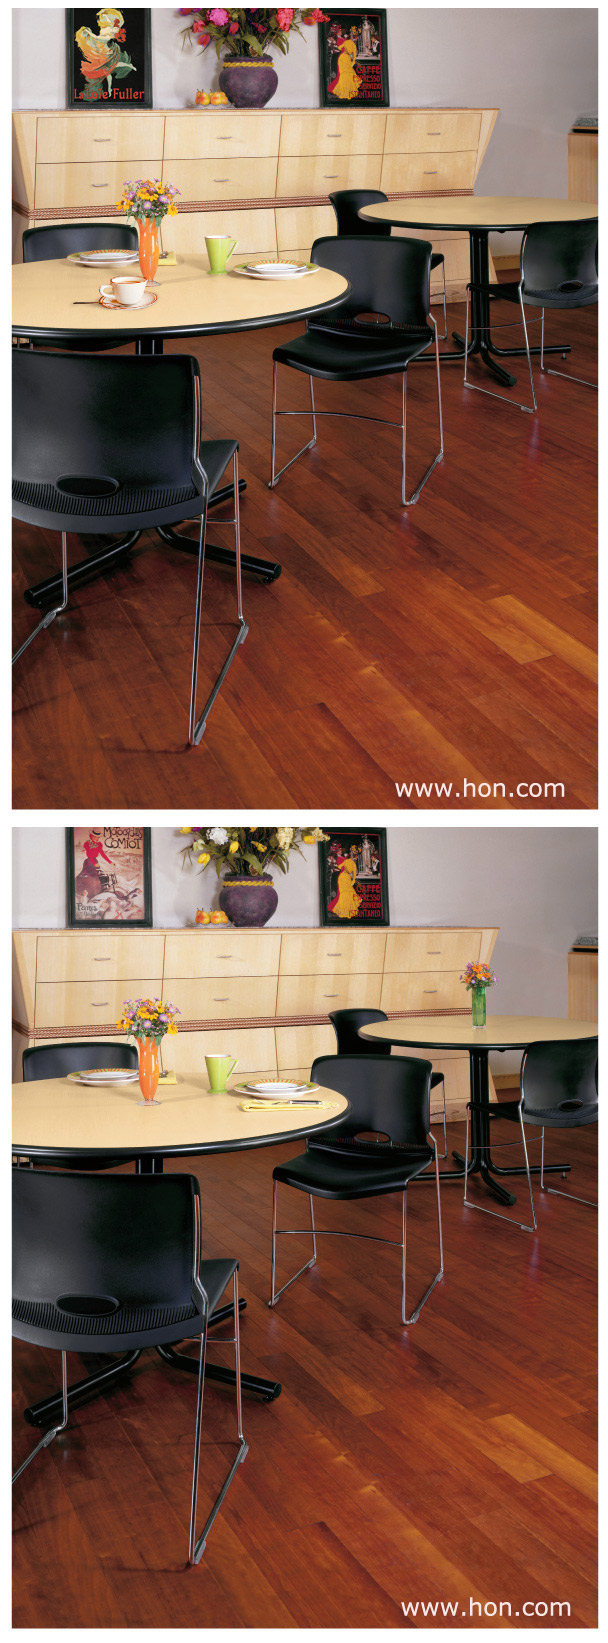 Shoplet HON Spot the Difference1 Can You Spot The Differences?